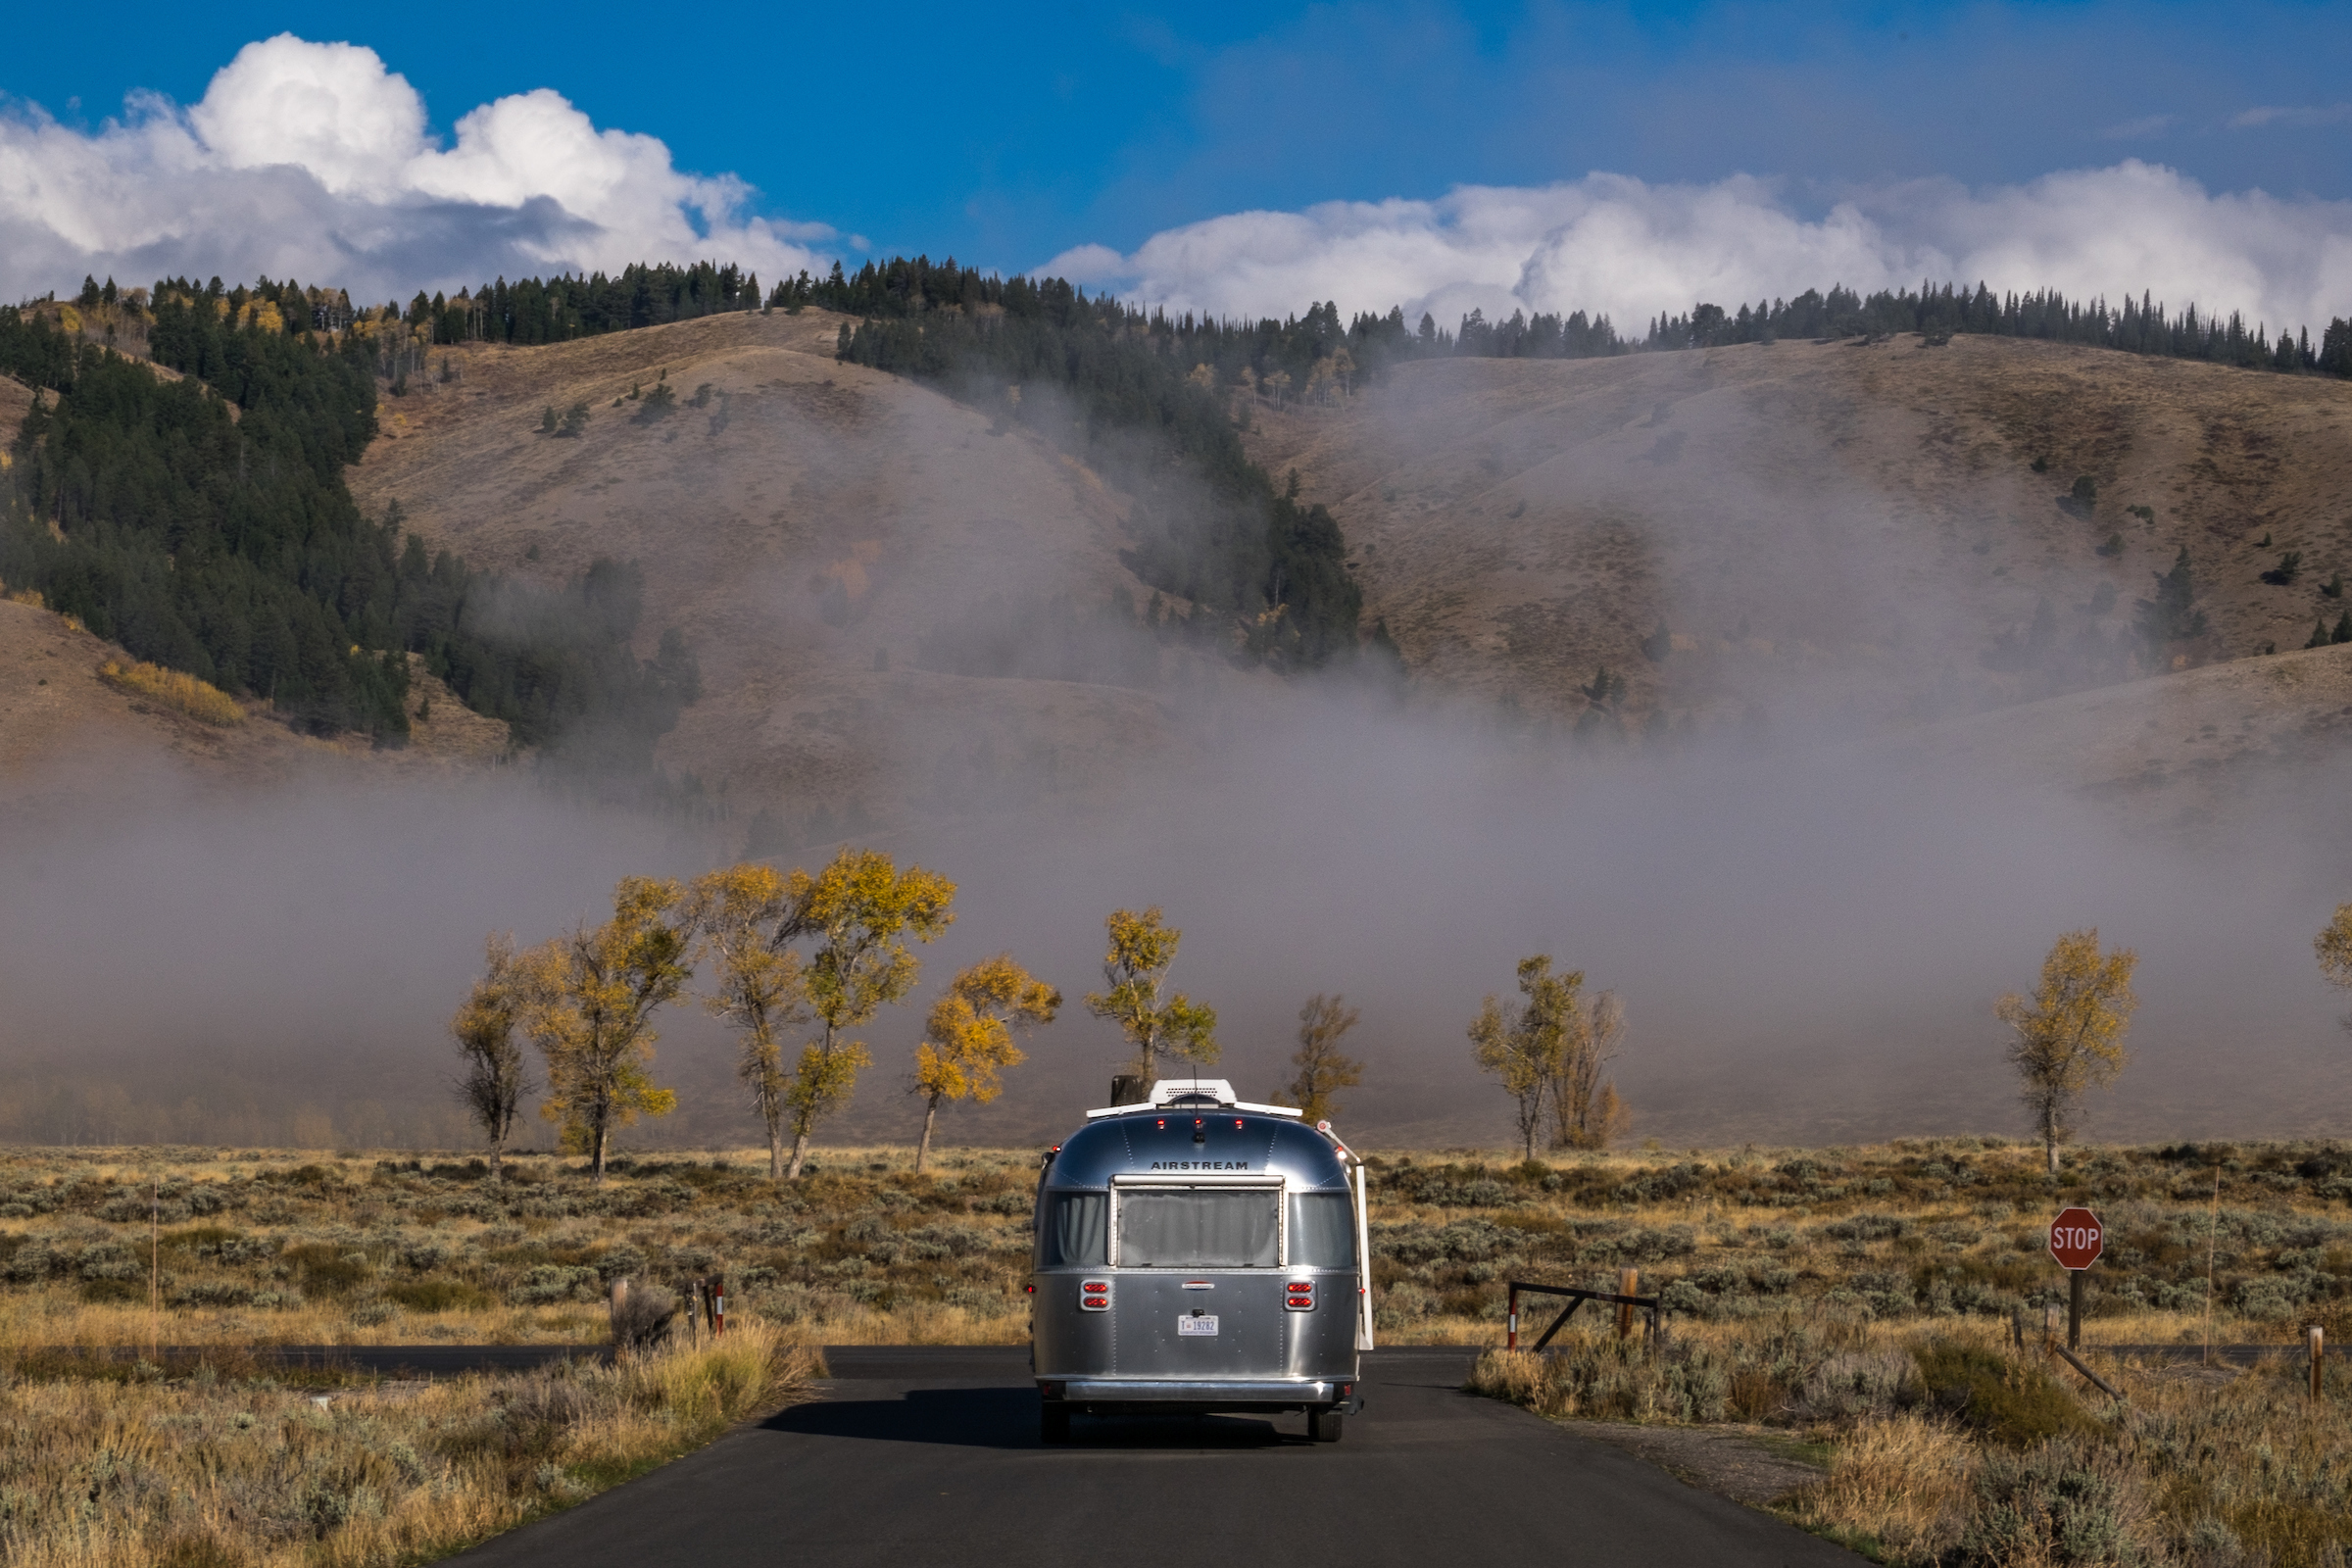 Wally the Airstream en route to the Gros Ventre campground.